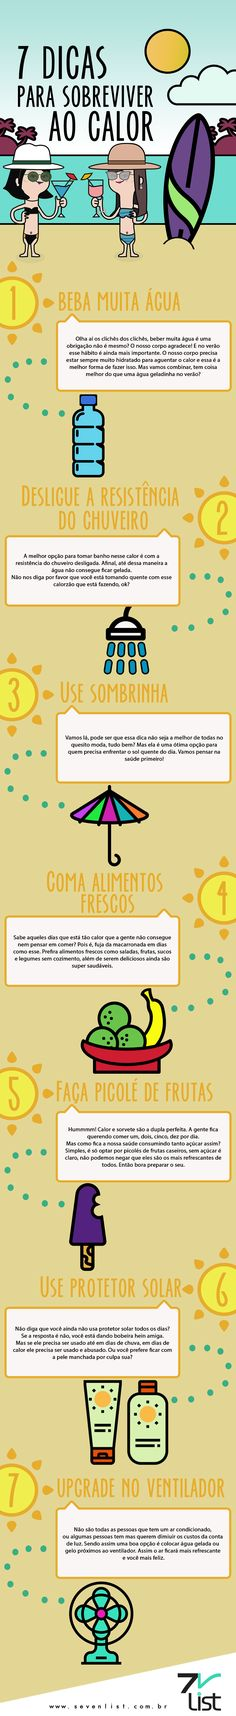 7 dicas para sobreviver ao calor Say Say Say, Like A Boss, Alternative Medicine, Blog Tips, Better Life, Good To Know, Personal Trainer, Health And Wellness, My Books